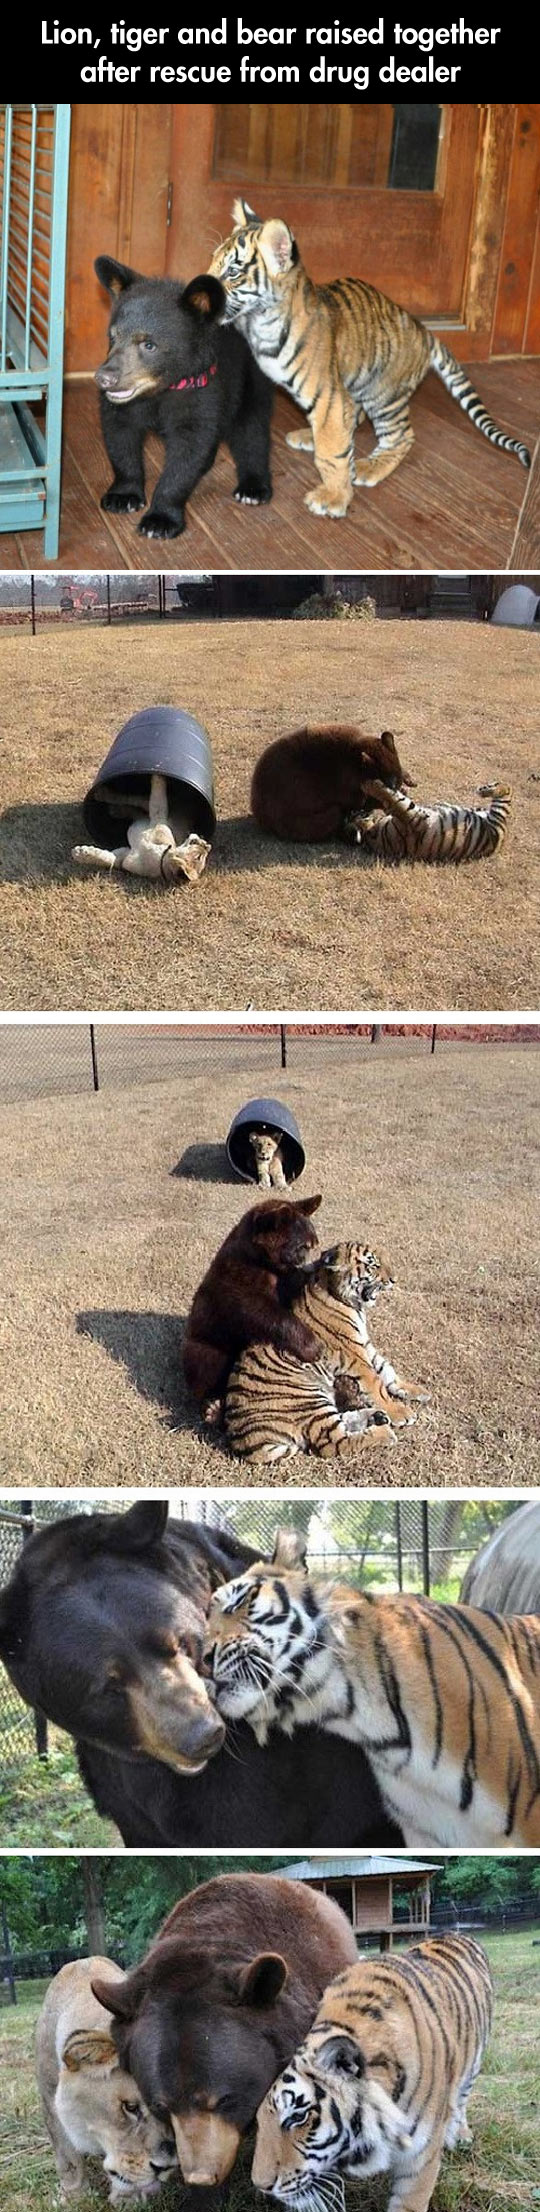 cool-bear-tiger-friends-growing-together